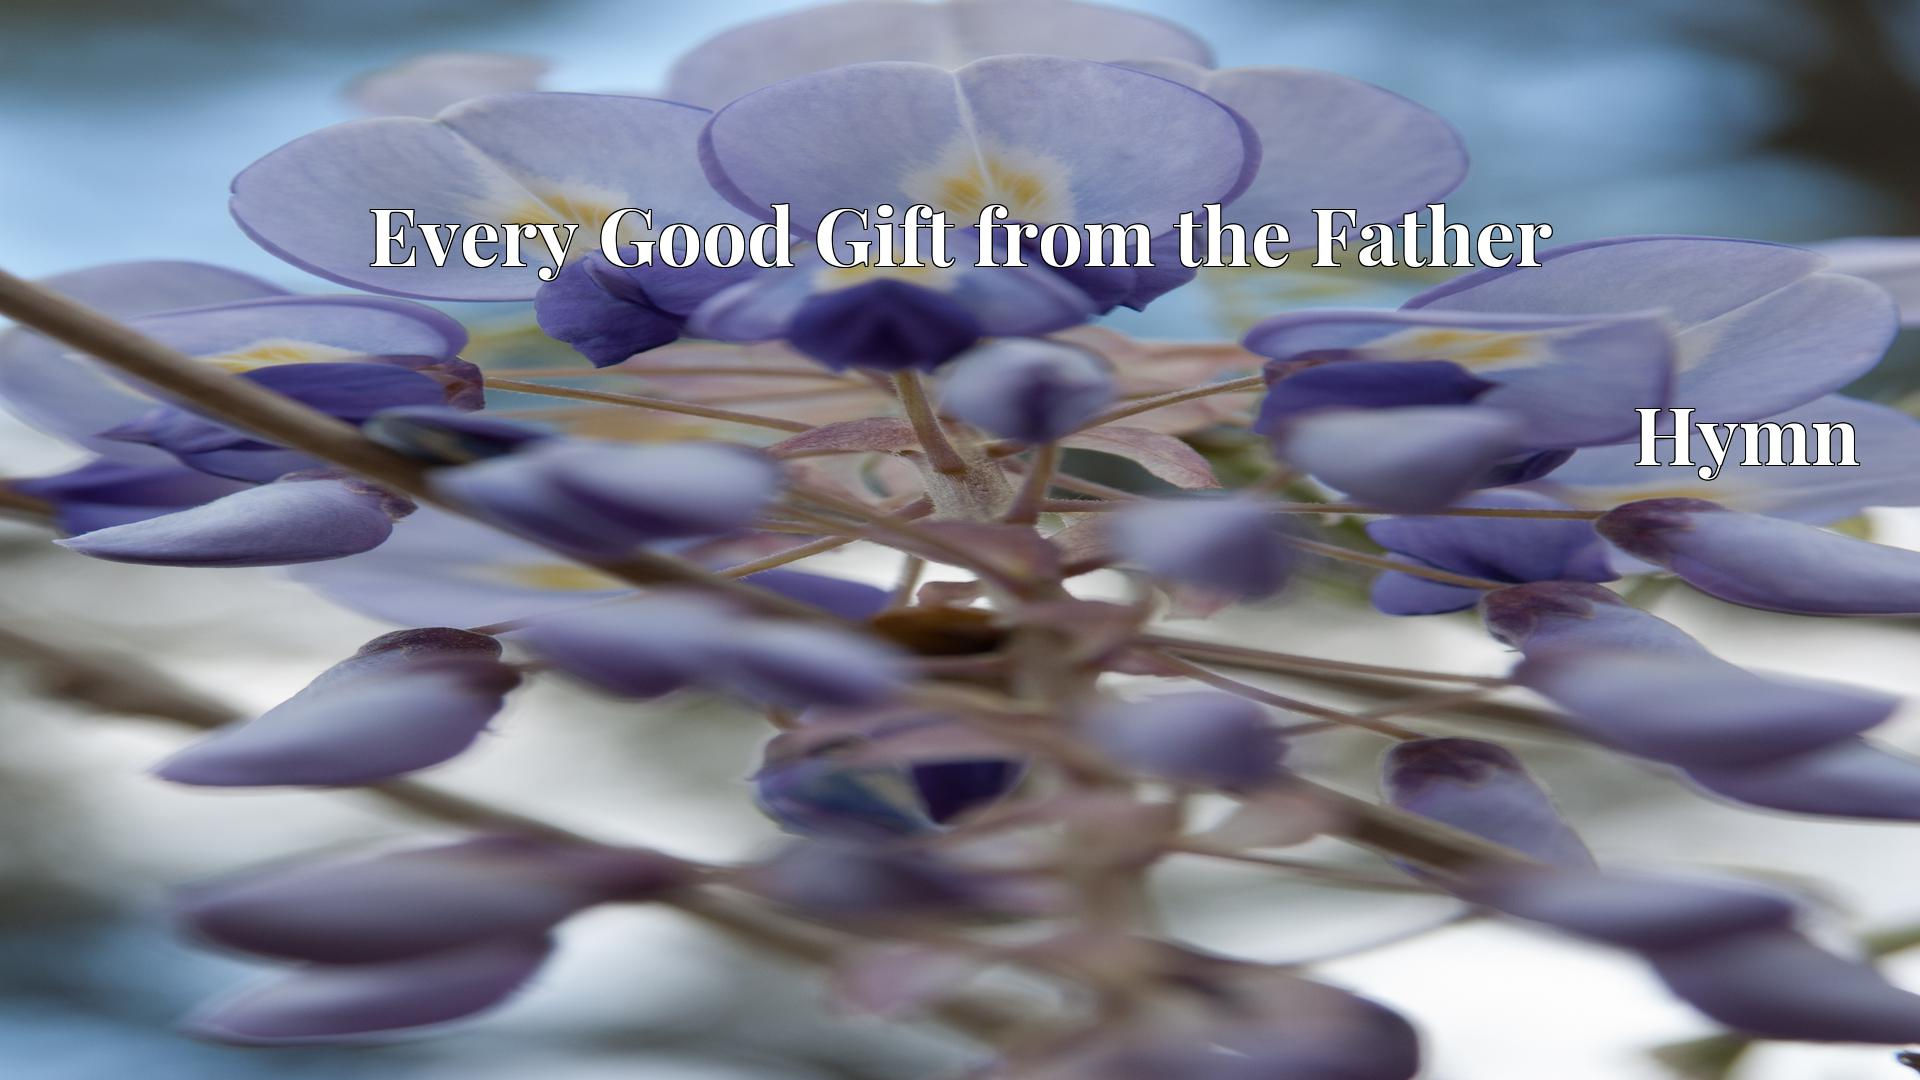 Every Good Gift from the Father Hymn